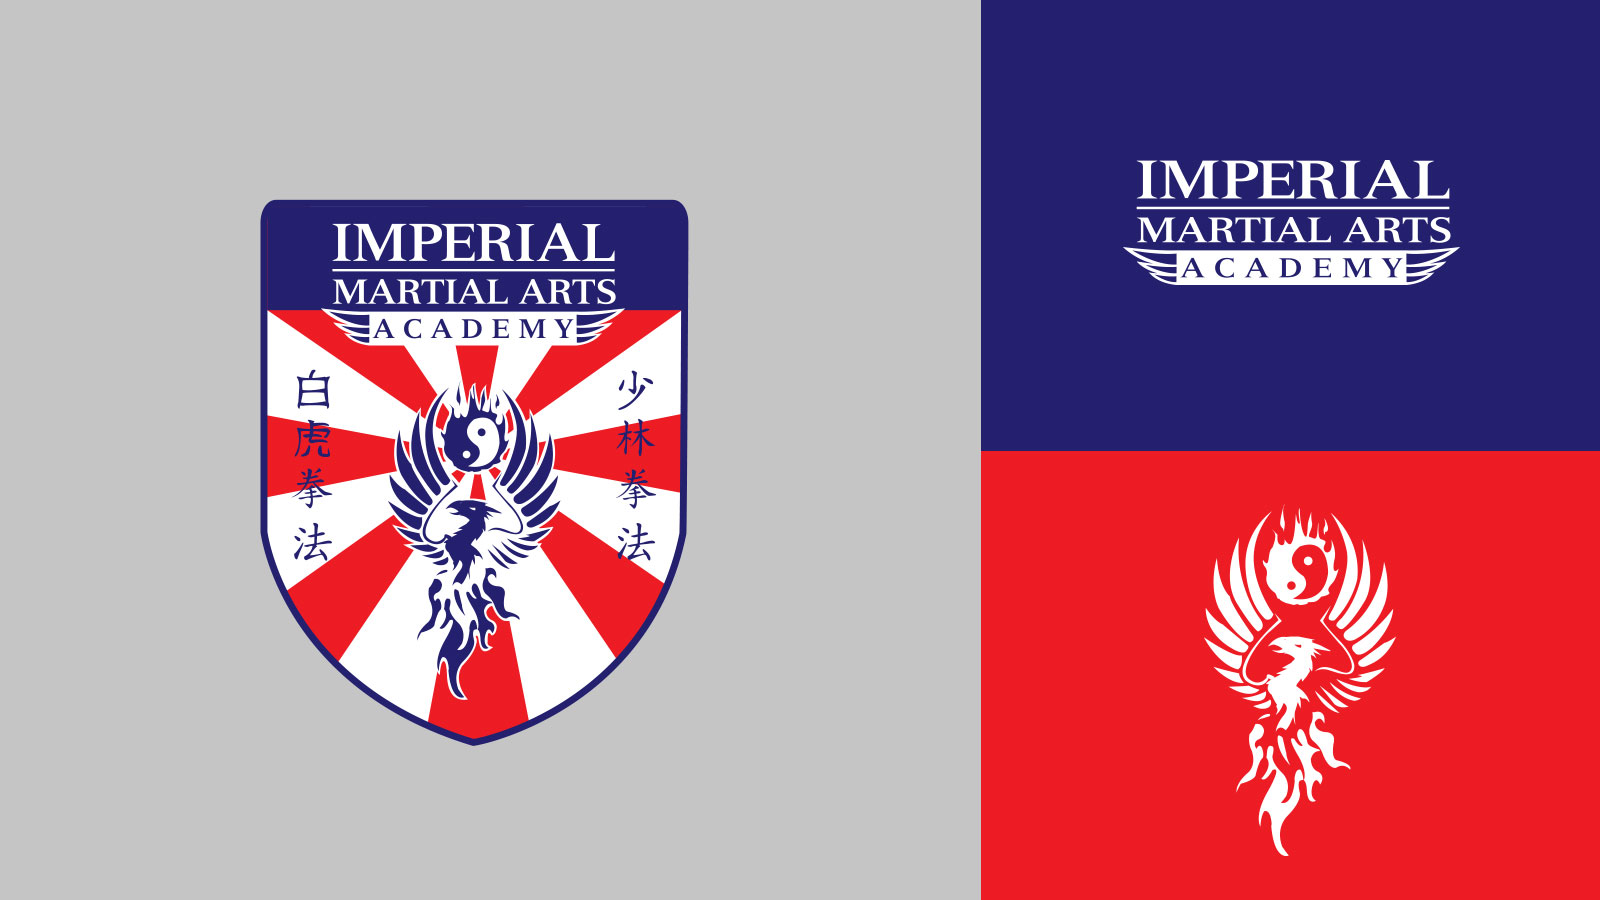 Imperial-Martial-Arts-Academy-Brand-Graphicsbyte